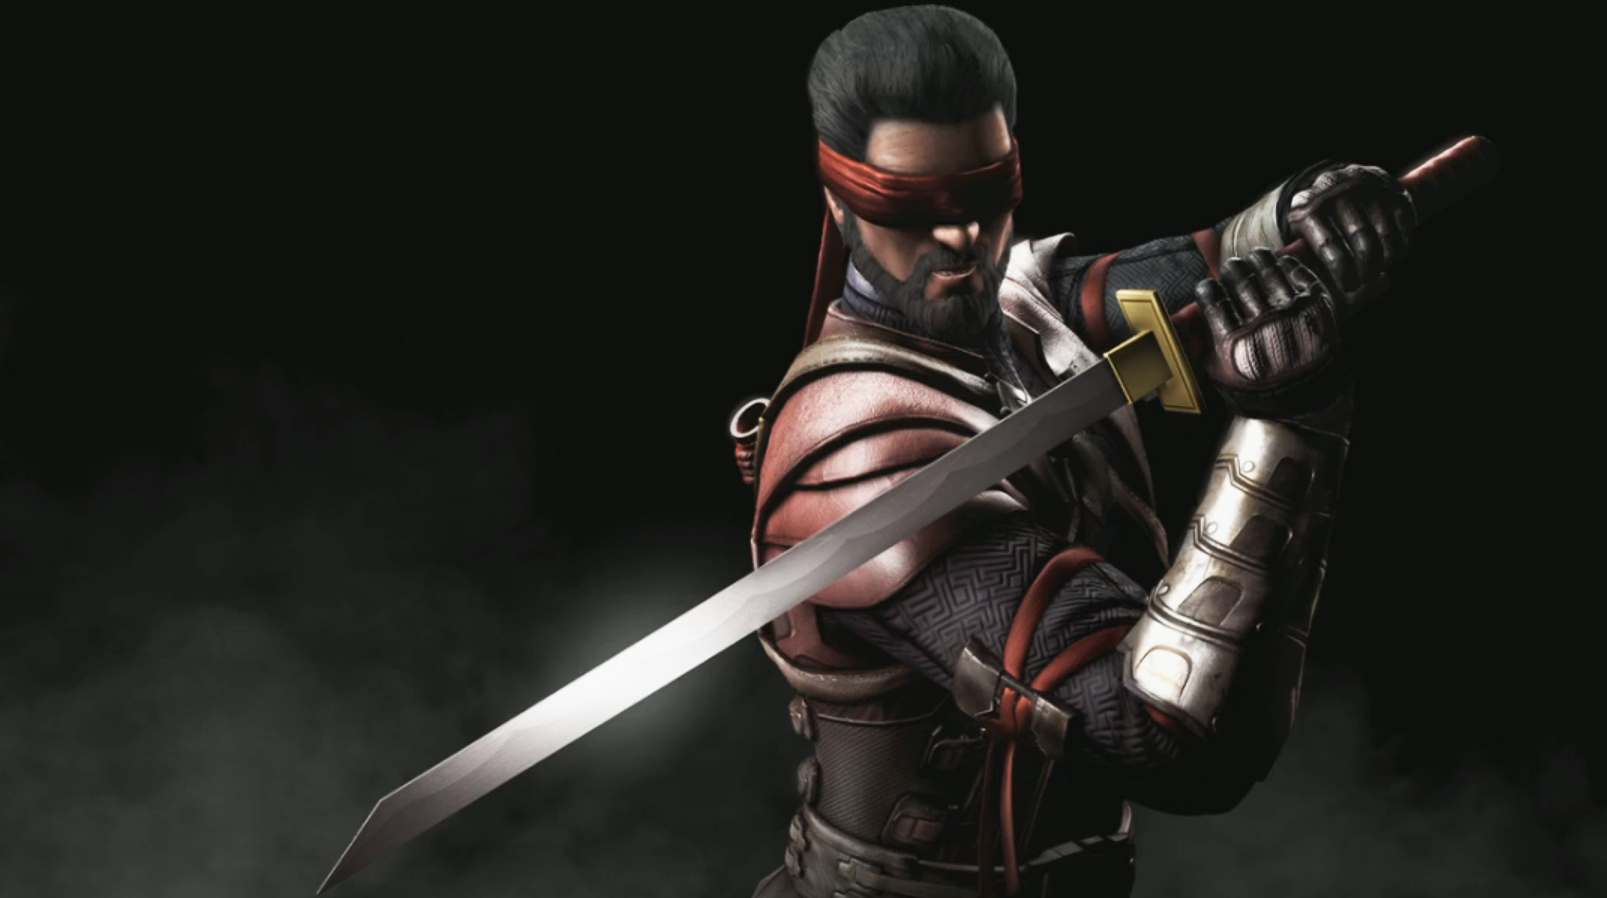 Mortal Kombat 11 Ed Boon Shuts Down Alleged Leaked Roster After